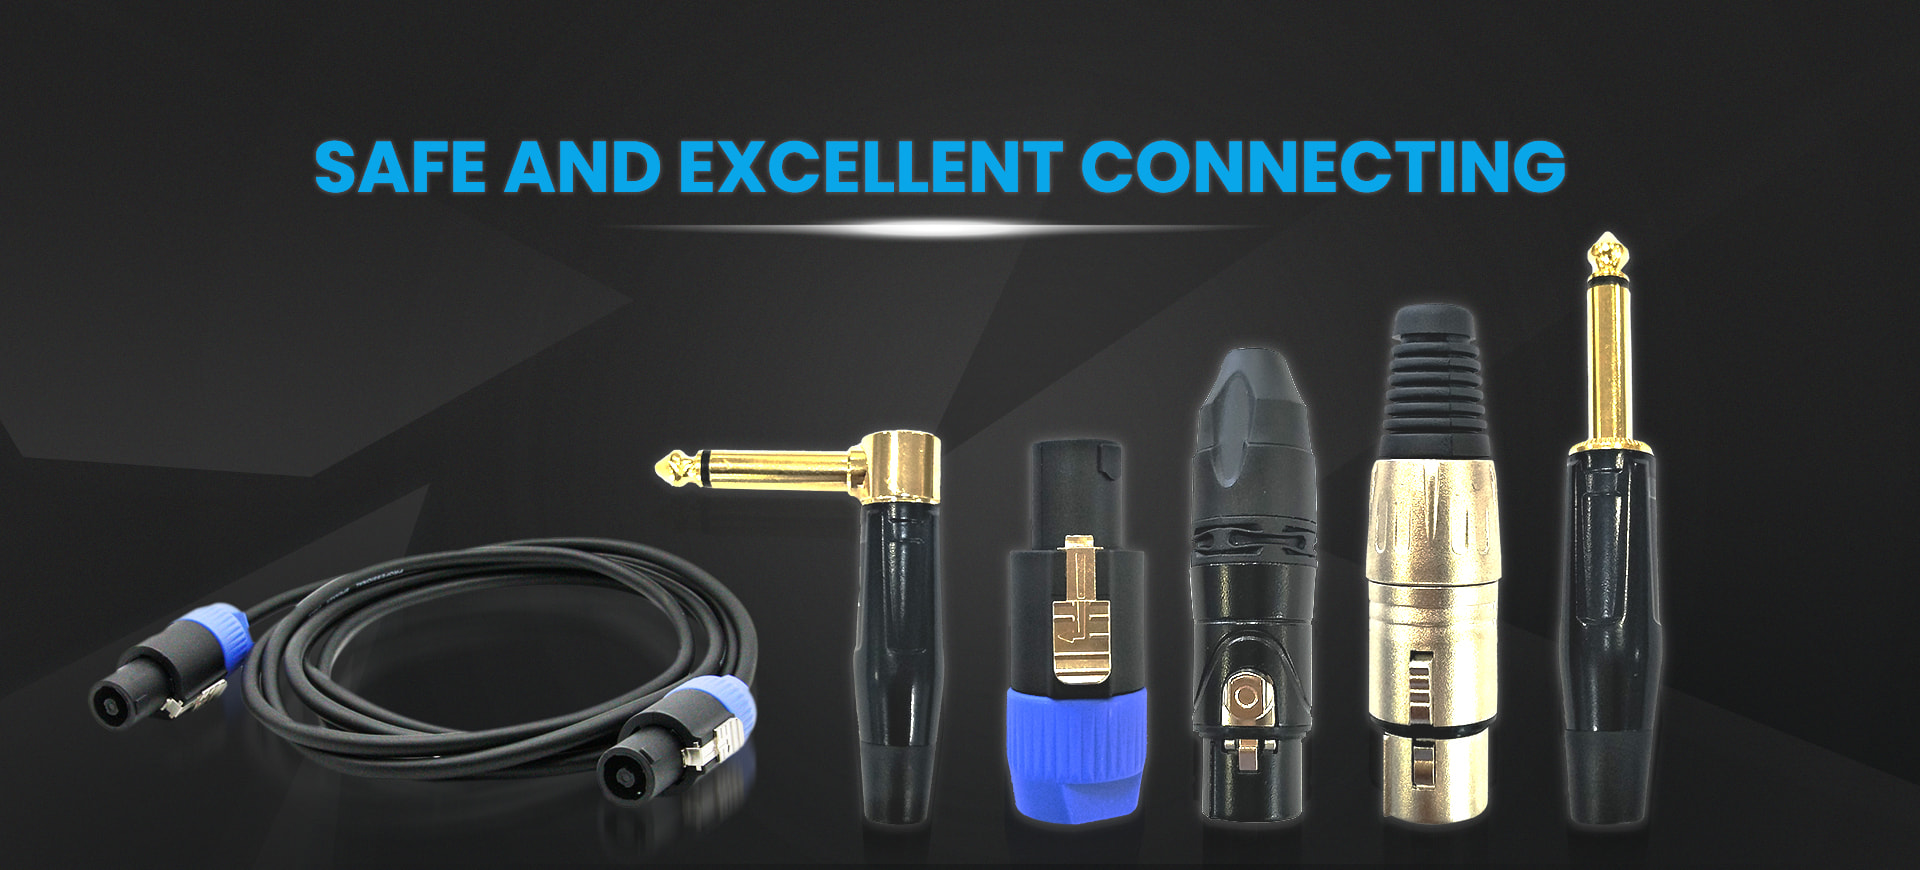 Professional Manufacturer Pure Sound from Excellent Cables  Focus on Pro Audio Cable more than 20 years